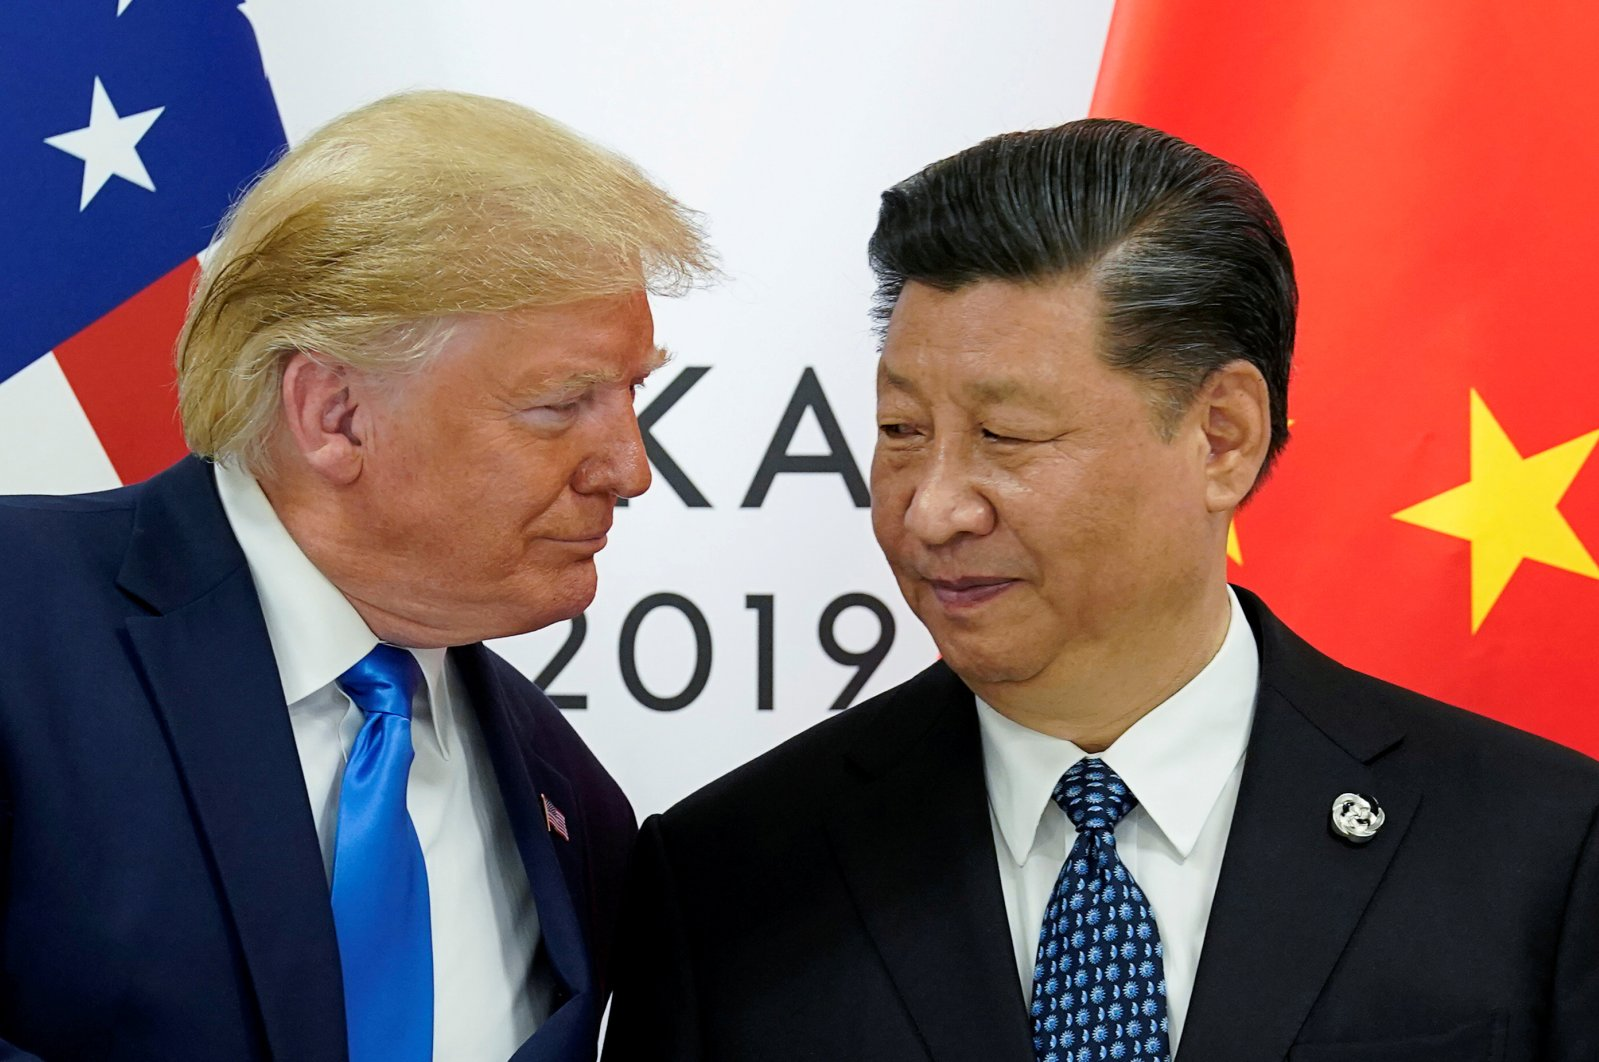 U.S. President Donald Trump meets with China's President Xi Jinping at the start of their bilateral meeting at the G20 leaders summit in Osaka, Japan, June 29, 2019. (Reuters File Photo)